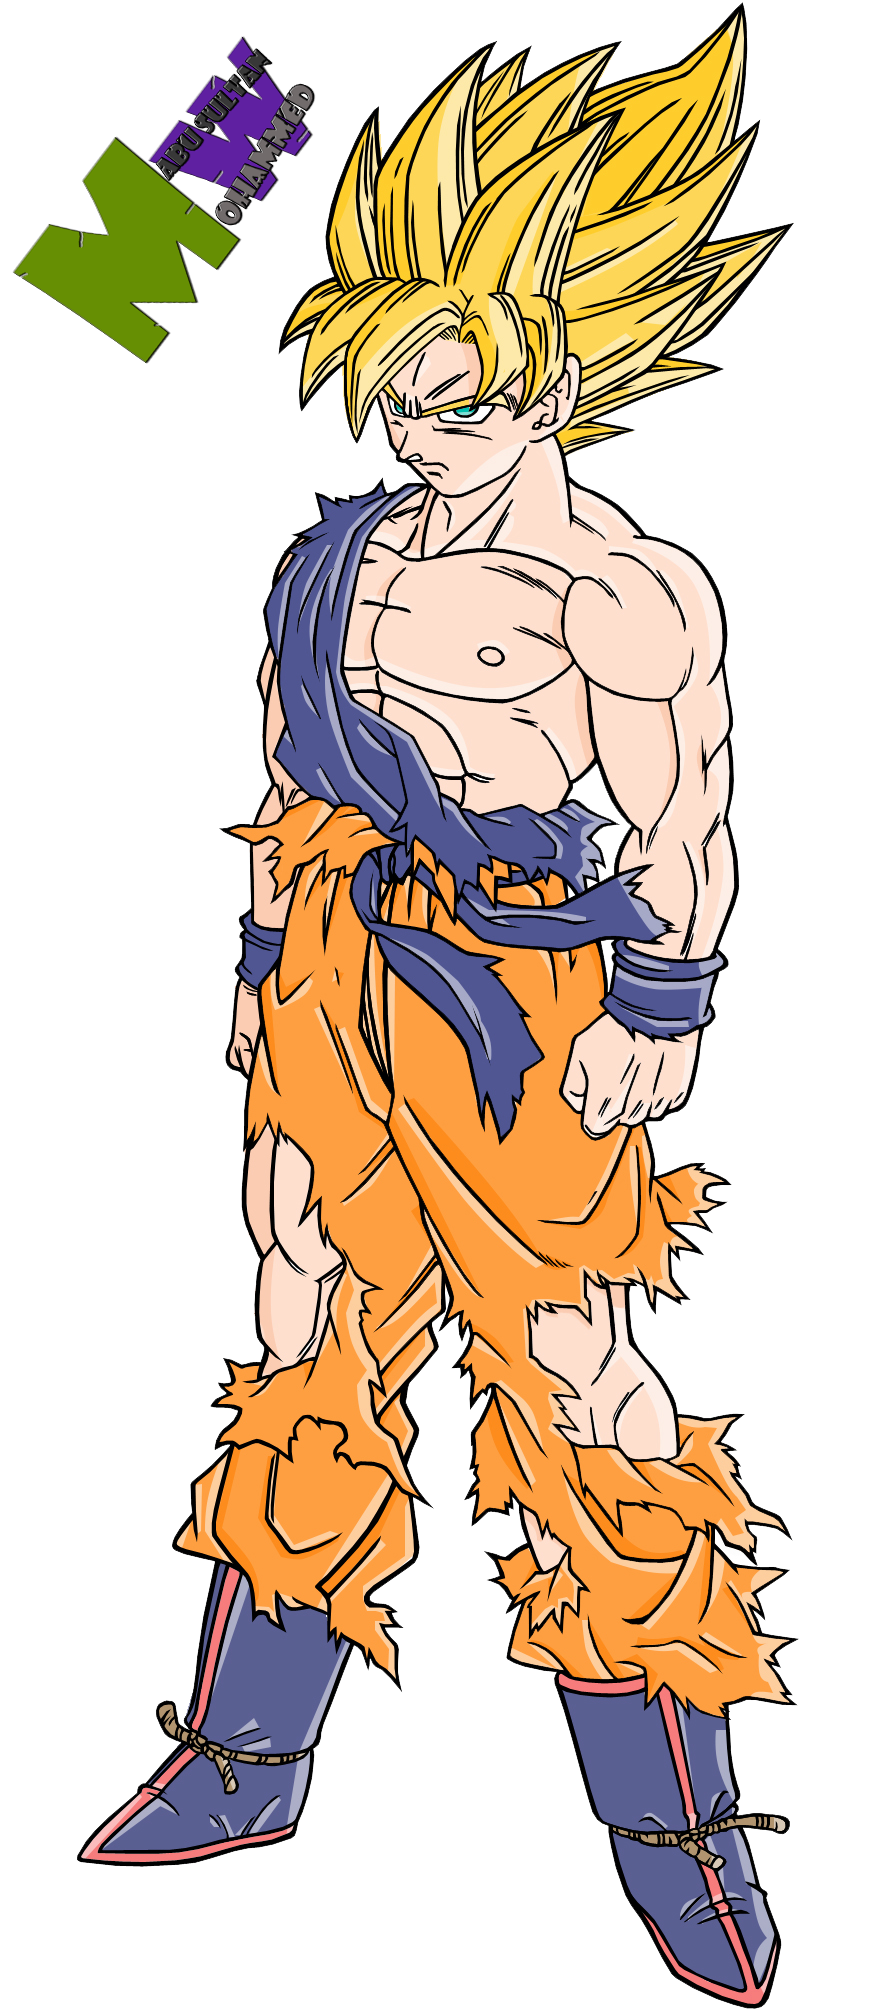 Coloring pages goku -  Goku Super Saiyan 4 Coloring Pages I13 By Alking